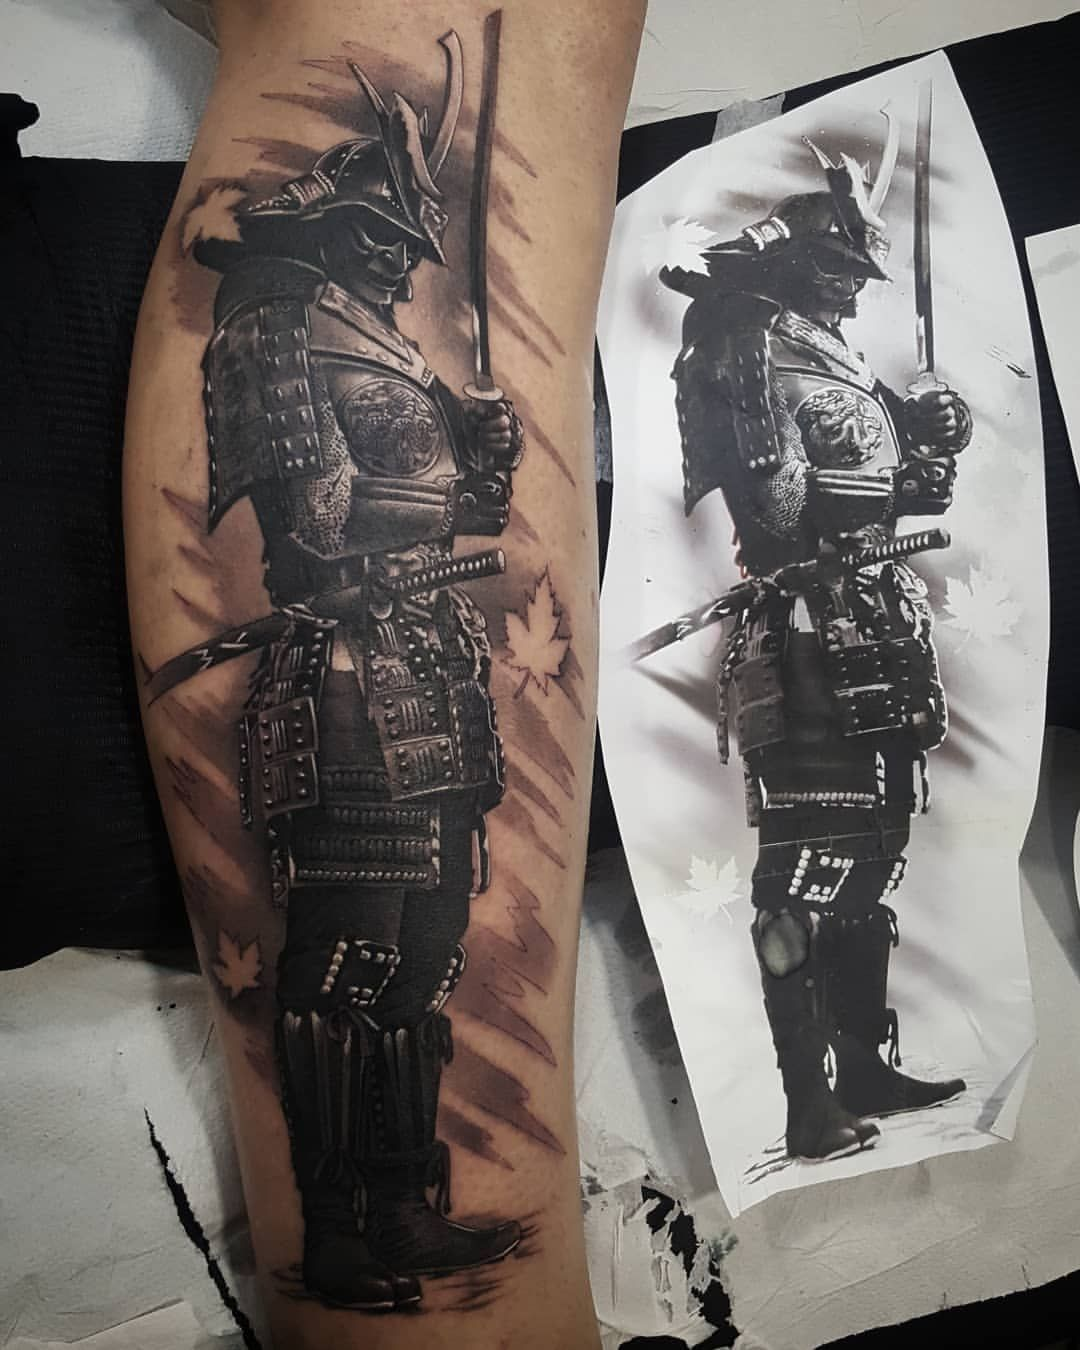 Pin By Richard Abq On Peterson Tattoo Warrior Tattoos Samurai Tattoo Design Samurai Tattoo